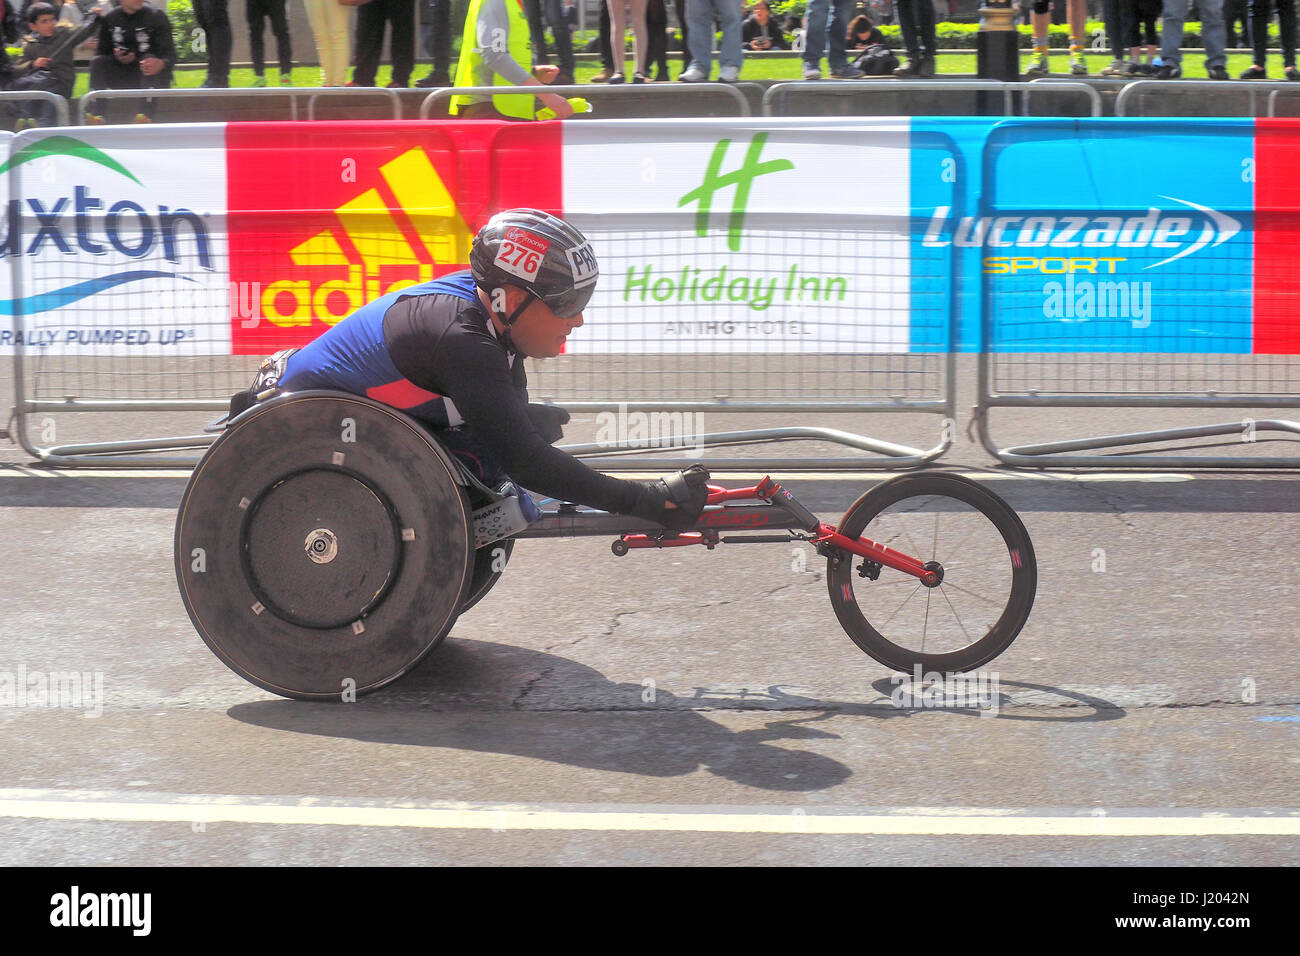 London, UK. 23rd Apr, 2017. A participant in the wheelchair section nears the finish line of the 2017 London marathon. Stock Photo